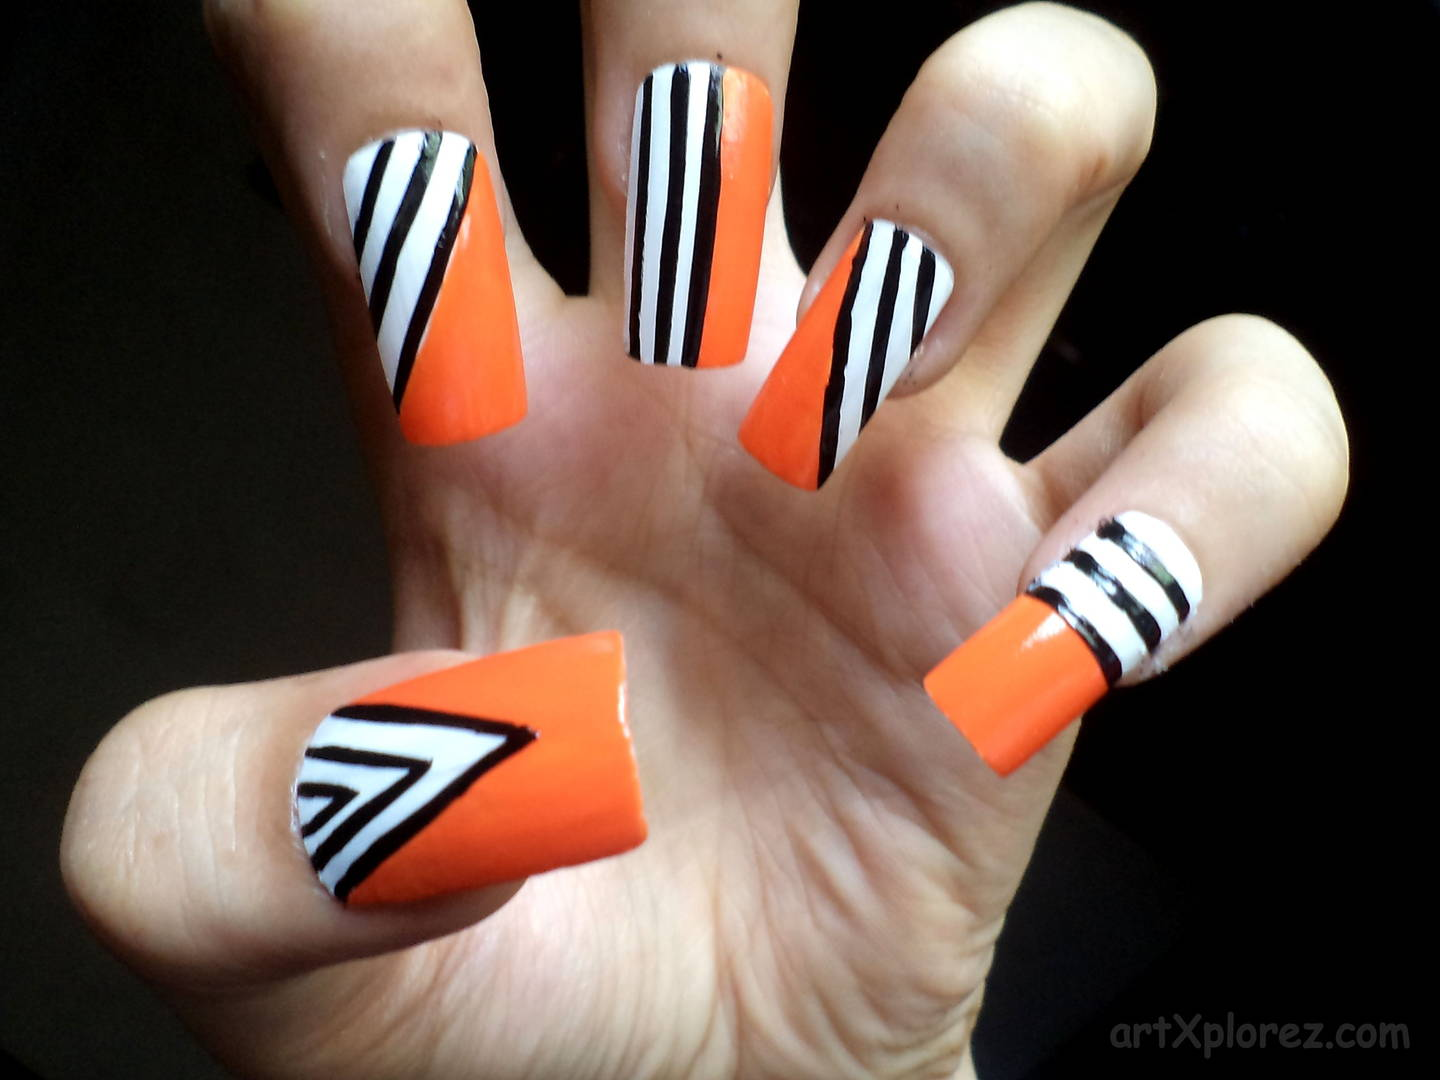 Orange Nails With Black And White Duo Stripes Nail Art Design - 60 Stylish Orange And Black Nail Art Design Ideas